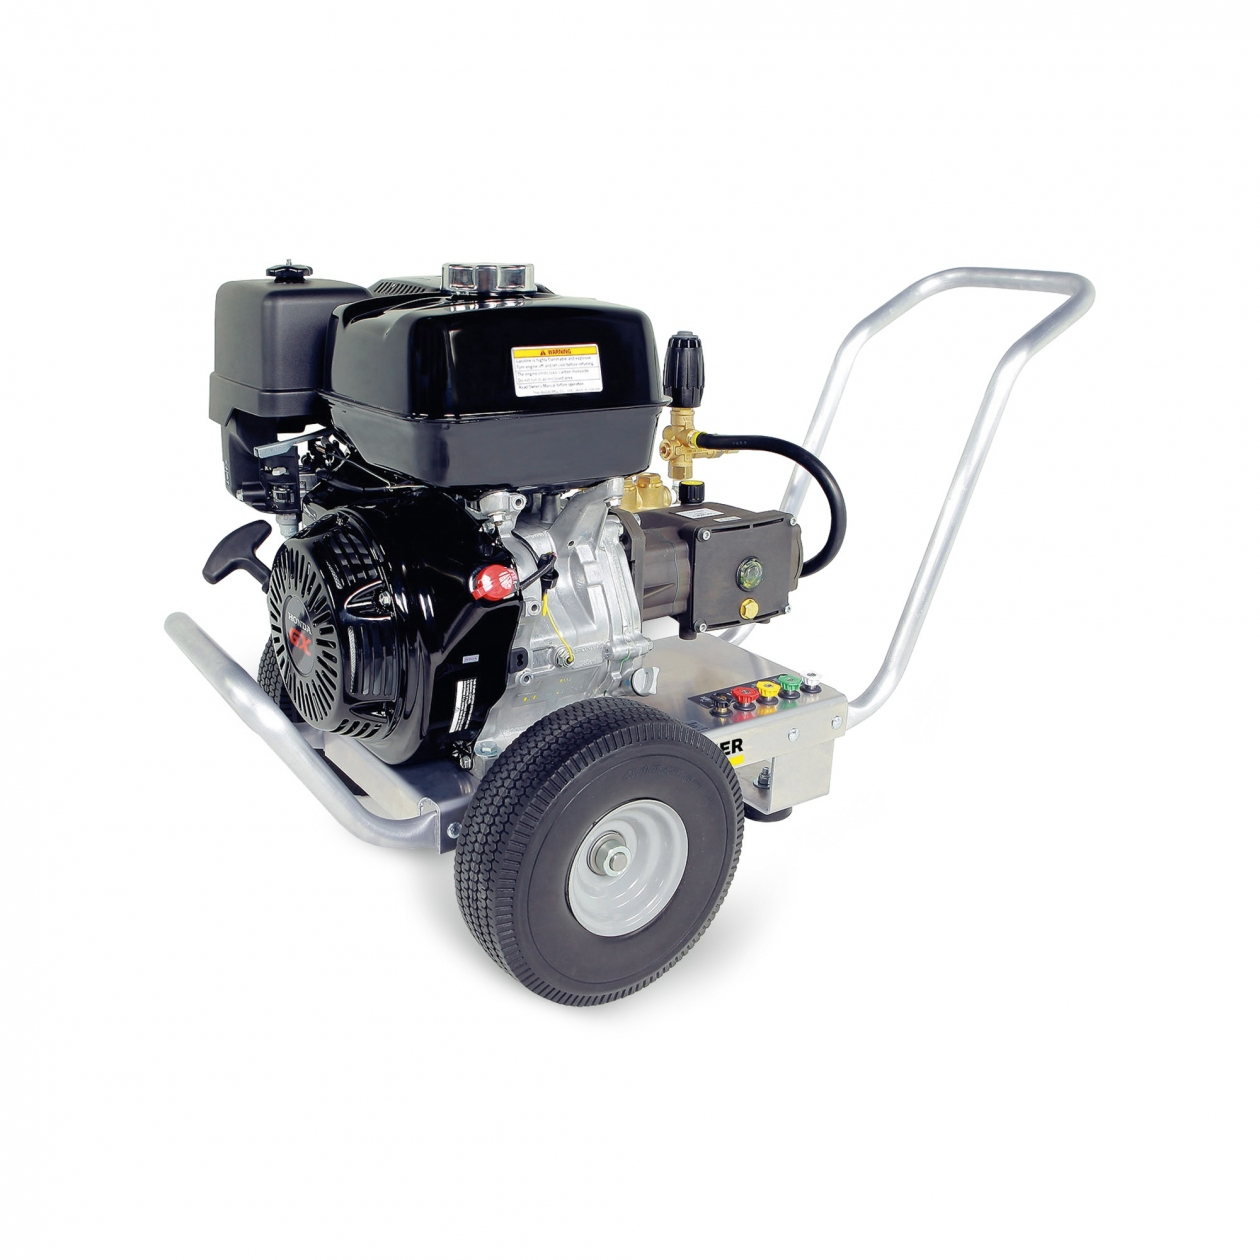 Model Number 9.807-719.0  sc 1 st  Karcher Pressure Washers in Mt. Vernon NY | A-1 Hydro ... & 2700 PSI High Pressure Sprayer for Sale in Mt. Vernon NY 10550 at ...